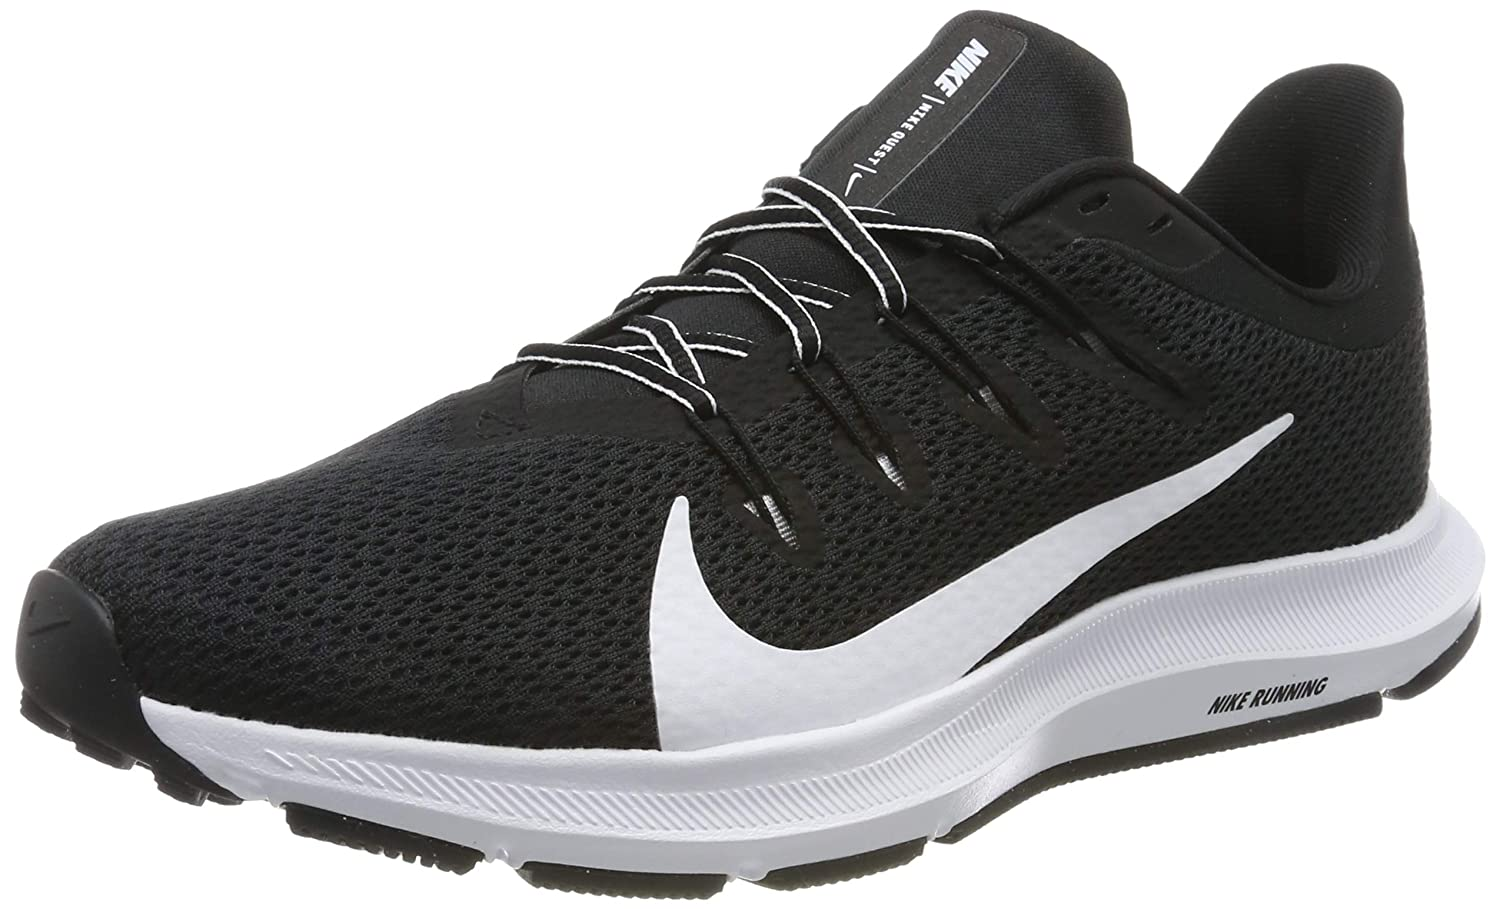 Buy Nike Men's Quest 2 Running Shoes at